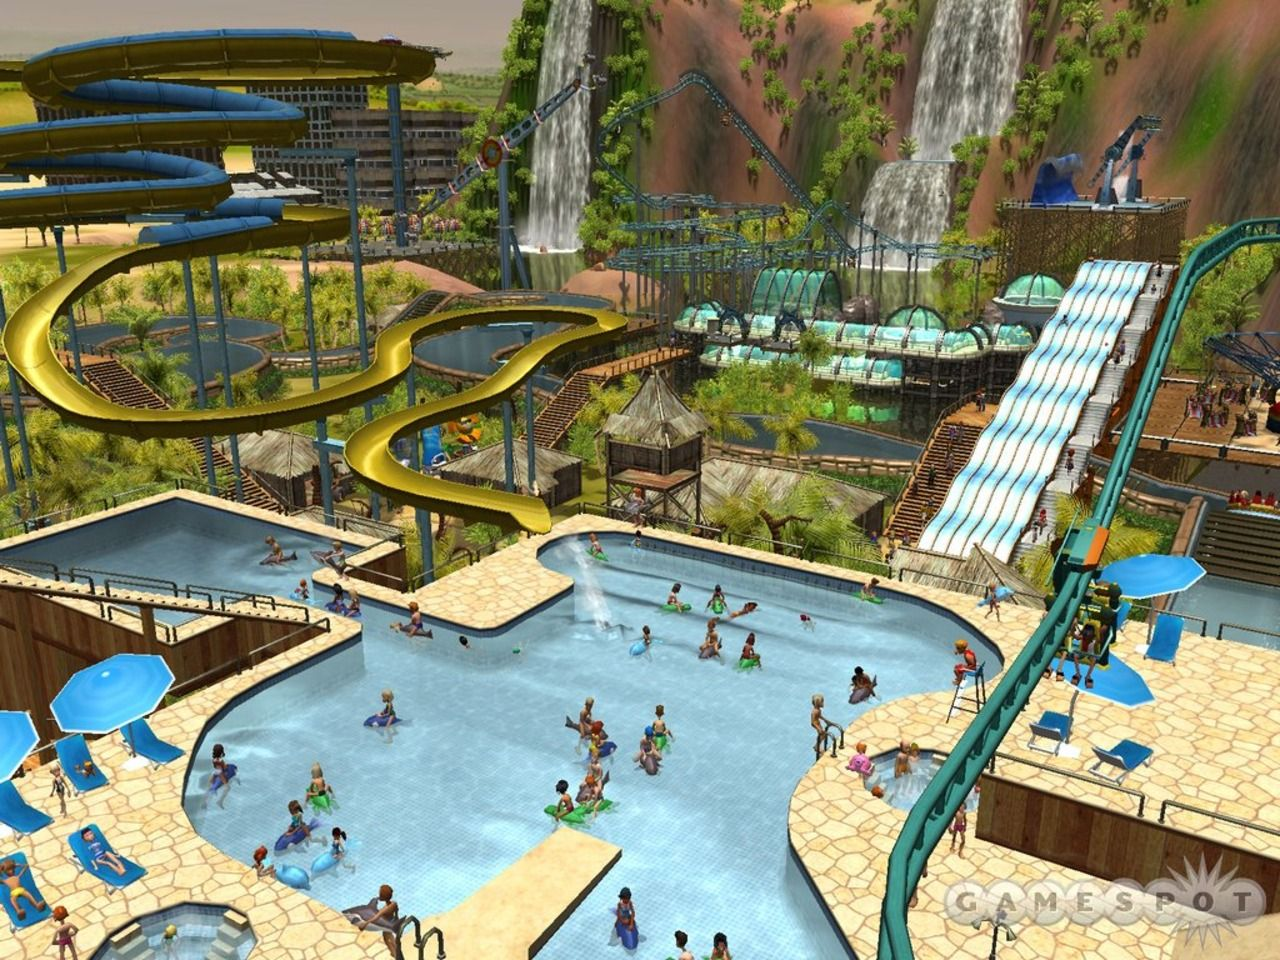 Waterpark rollercoaster clipart clip royalty free stock roller coaster tycoon 3 water park - Google Search | Roller ... clip royalty free stock